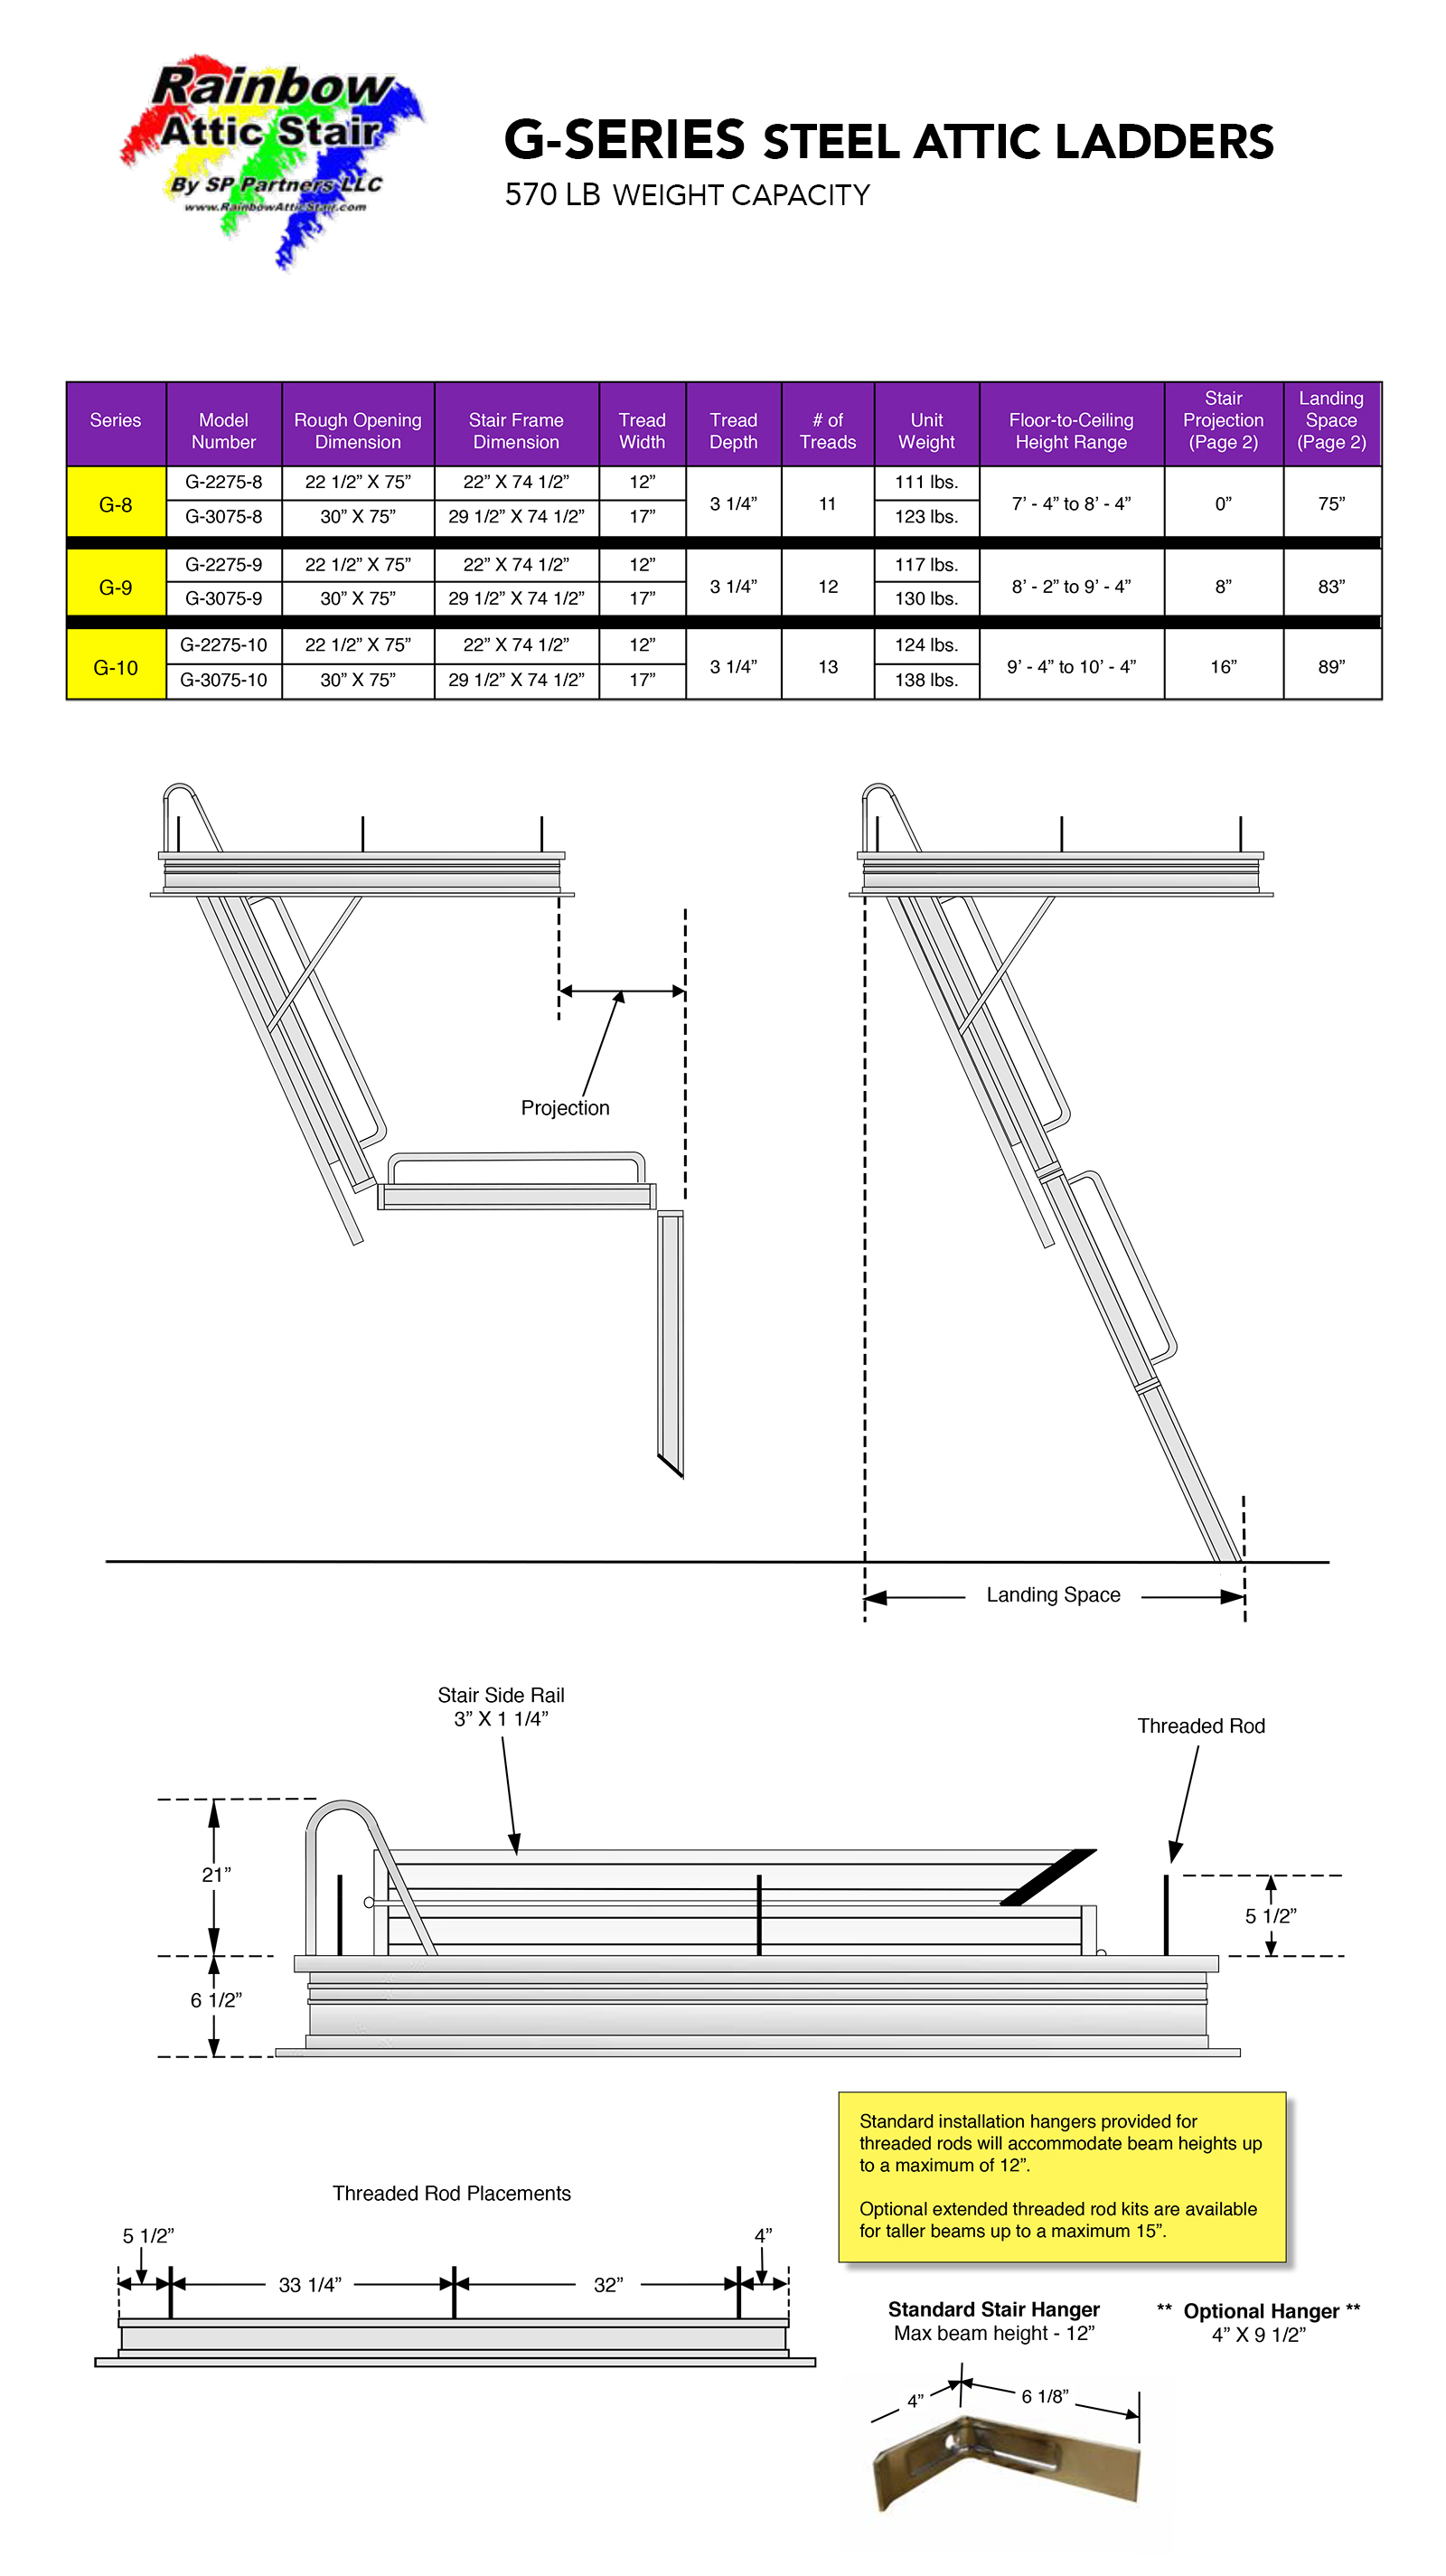 Rainbow Attic Stair Specifications G-Series